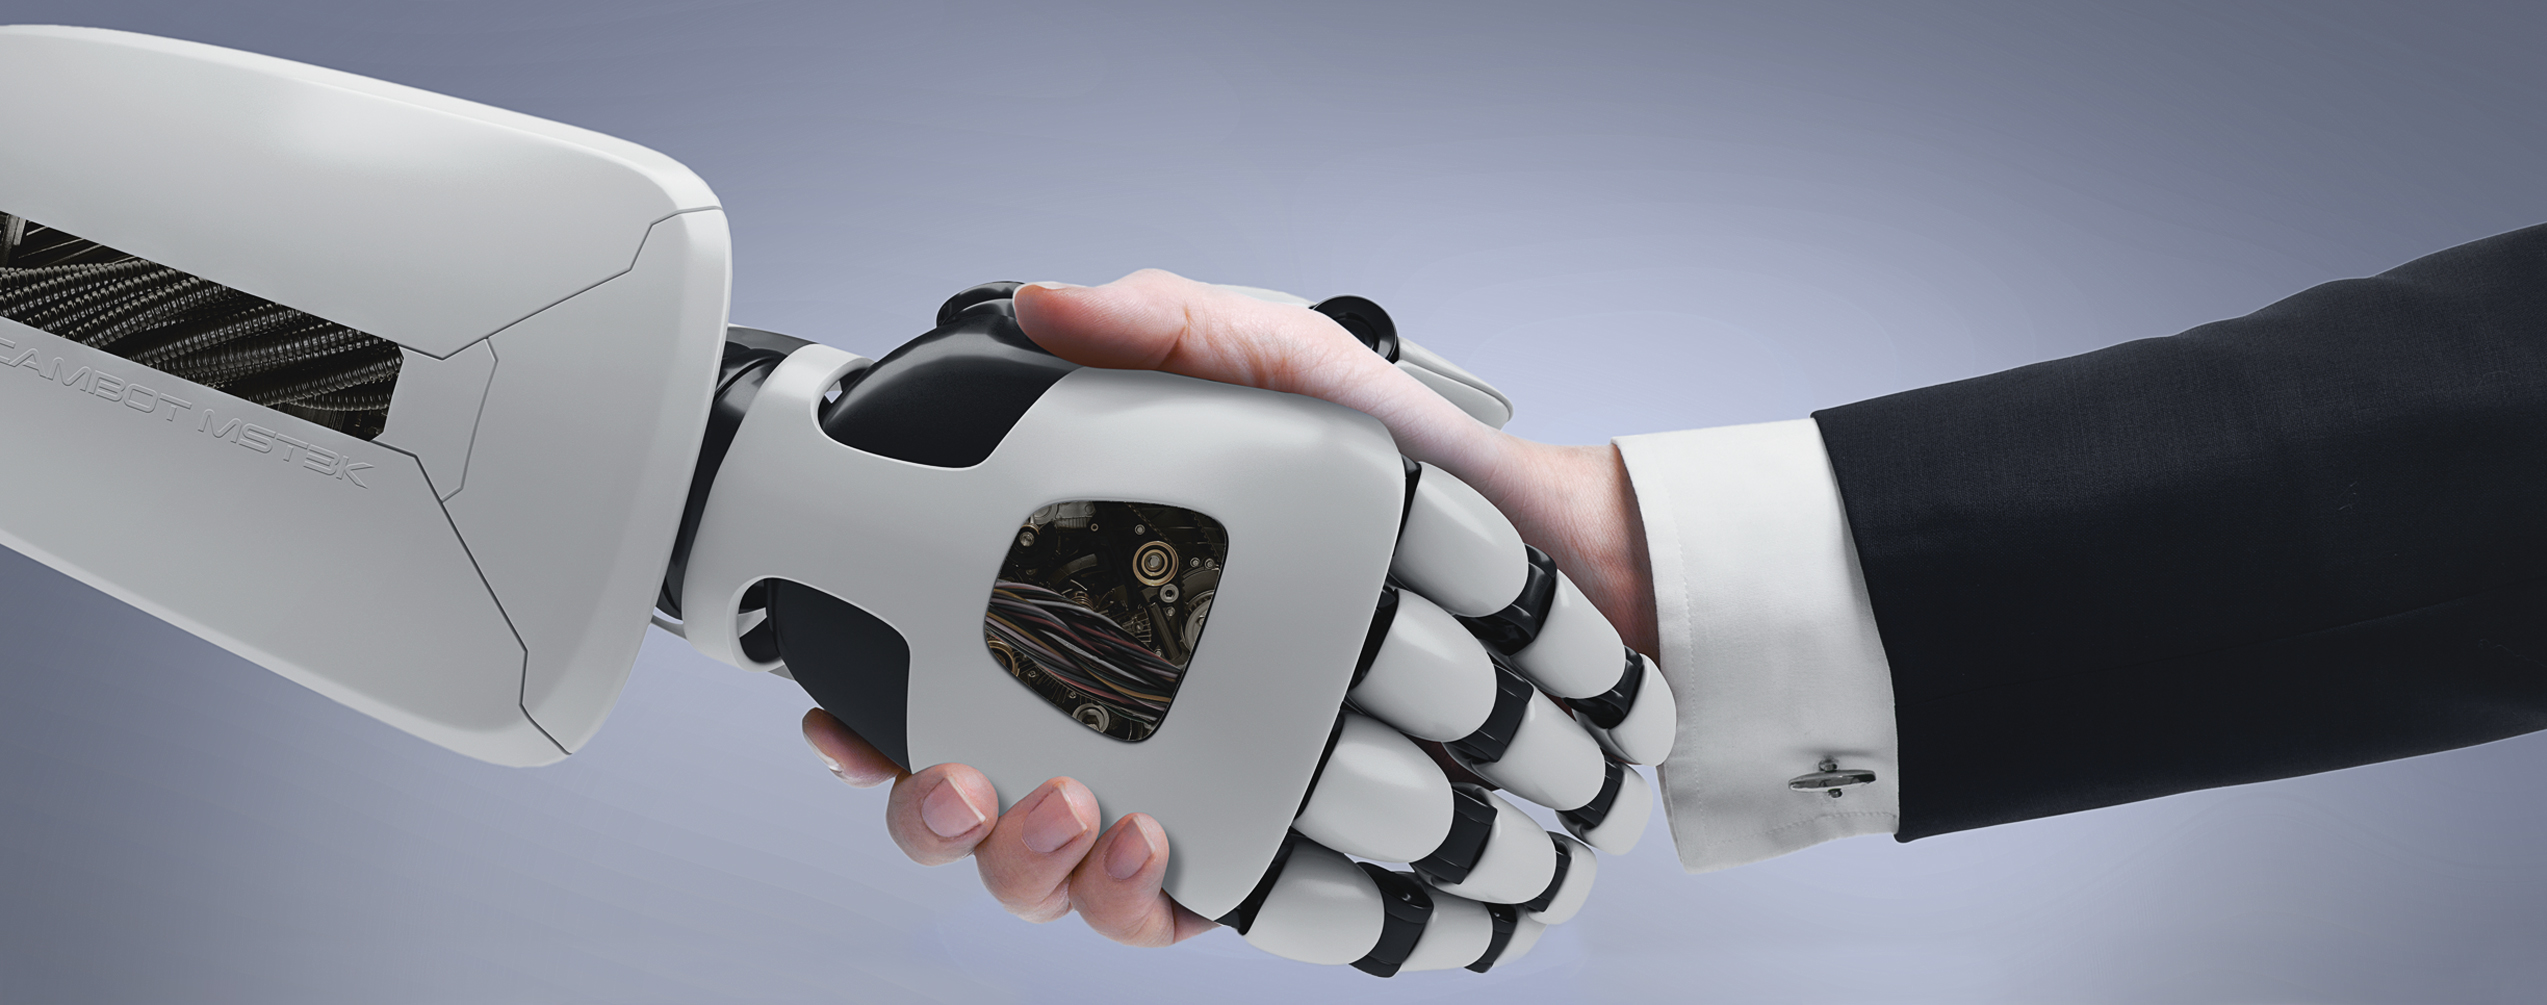 "Handshake image for article ""Human? Interaction"". A robot hand shaking hands with a human hand."